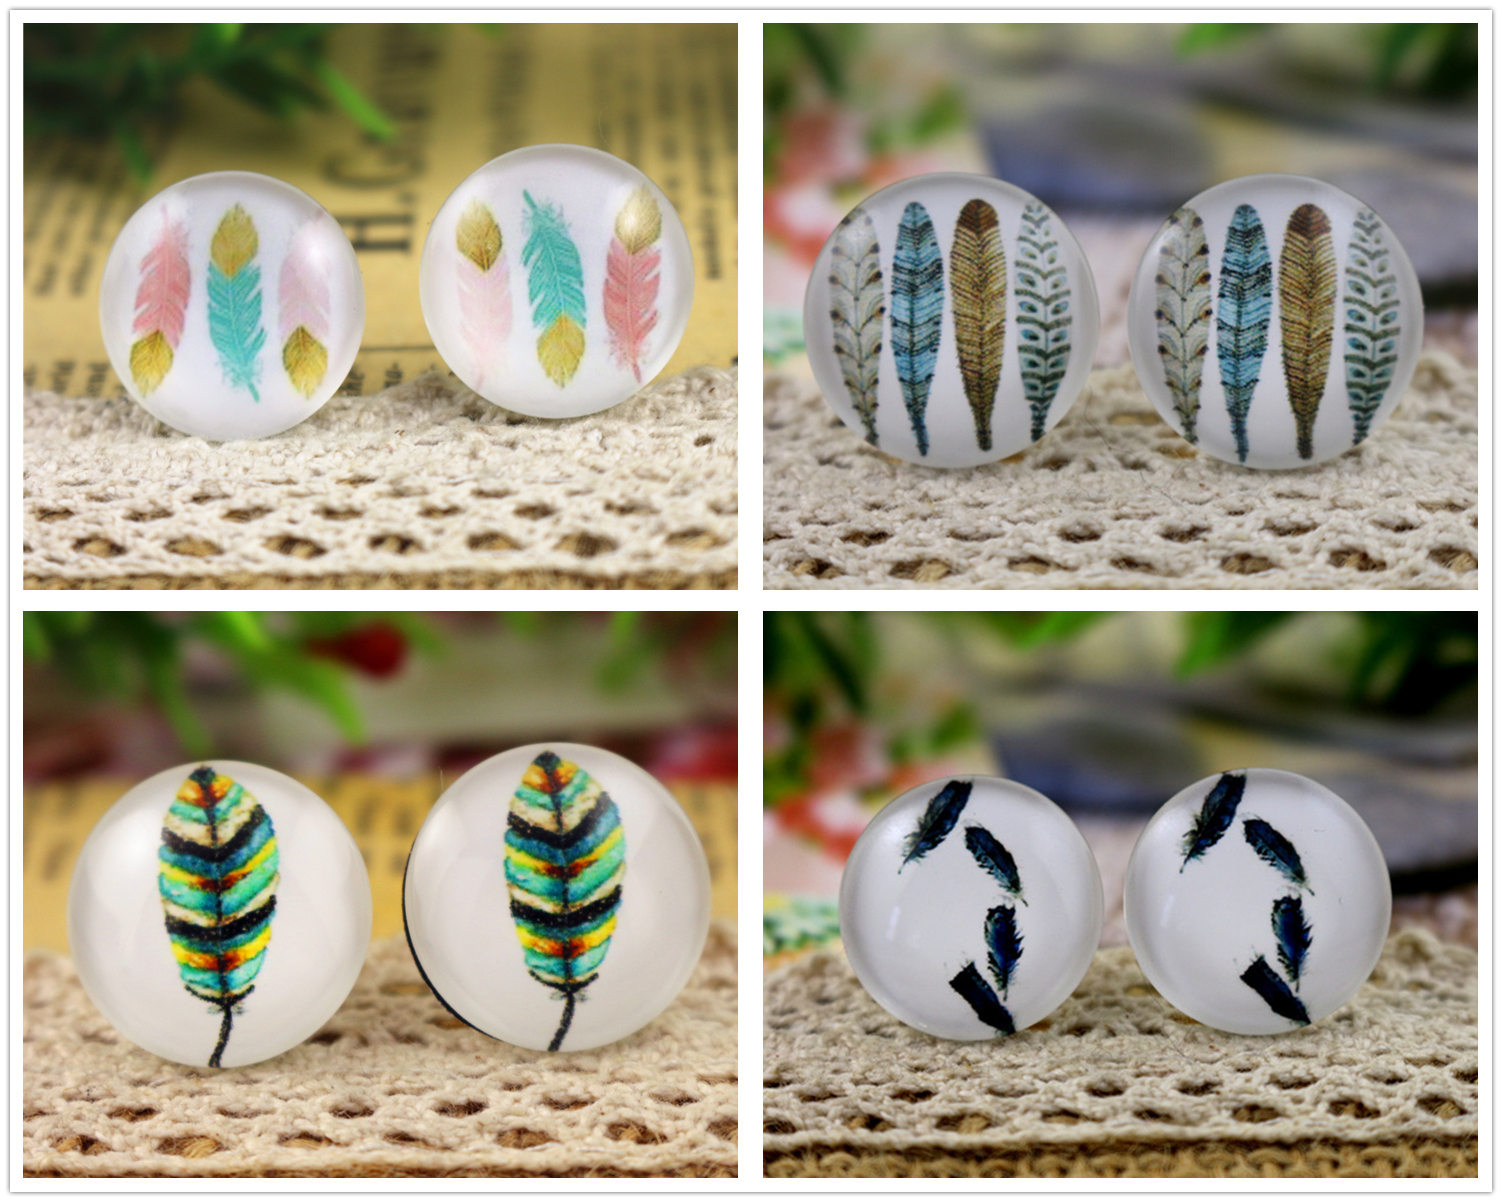 2018 Hot Sale 10pcs 20mm Feather wings Handmade Photo Glass Cabochons2018 Hot Sale 10pcs 20mm Feather wings Handmade Photo Glass Cabochons